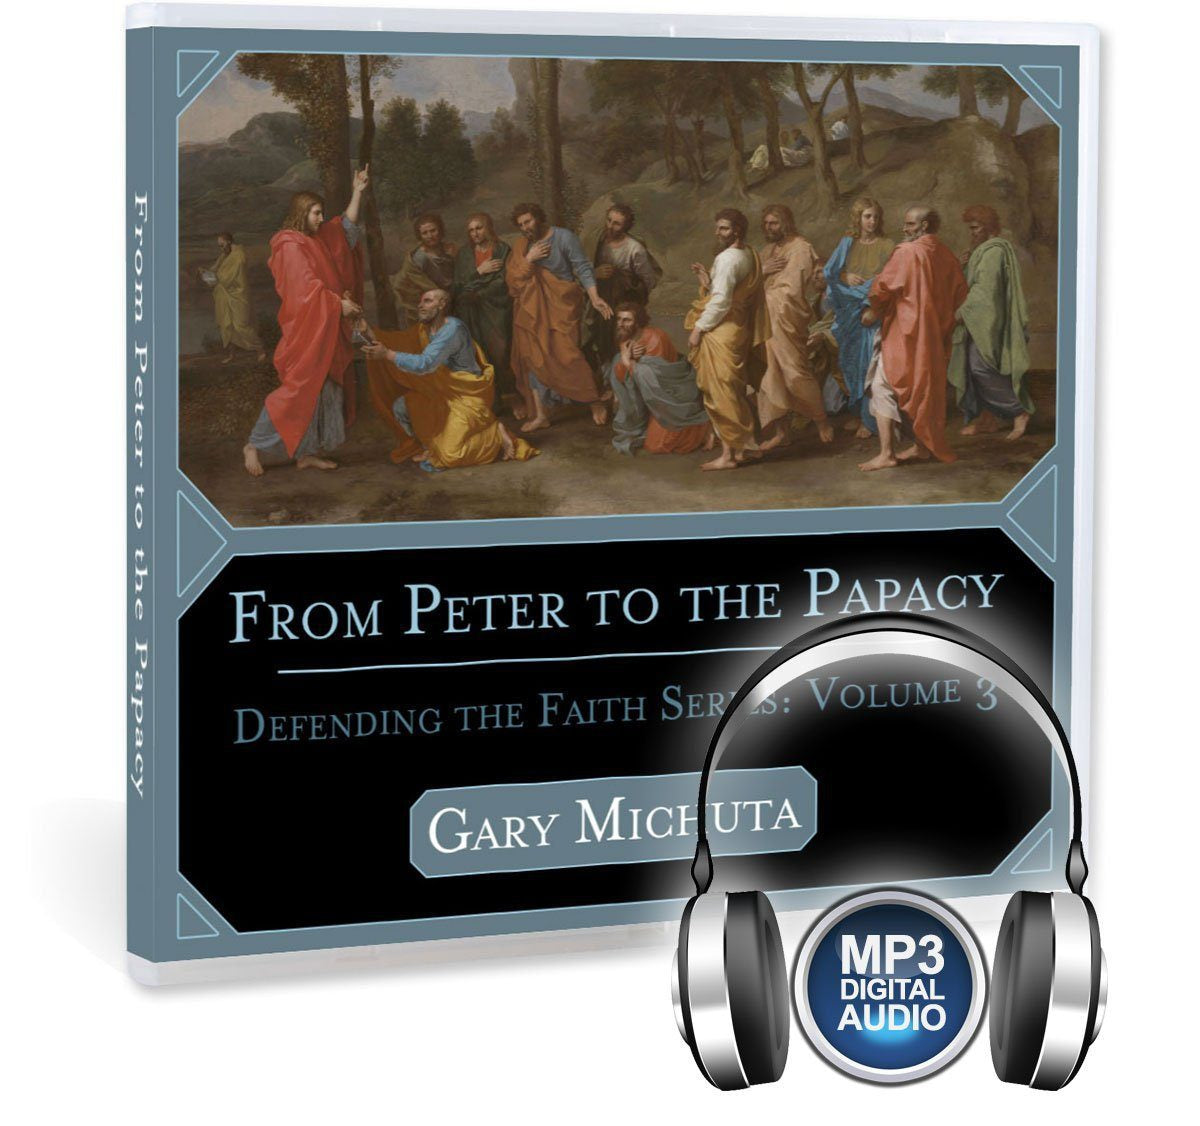 From Peter to the Papacy - Defending the Faith Series: Volume 3